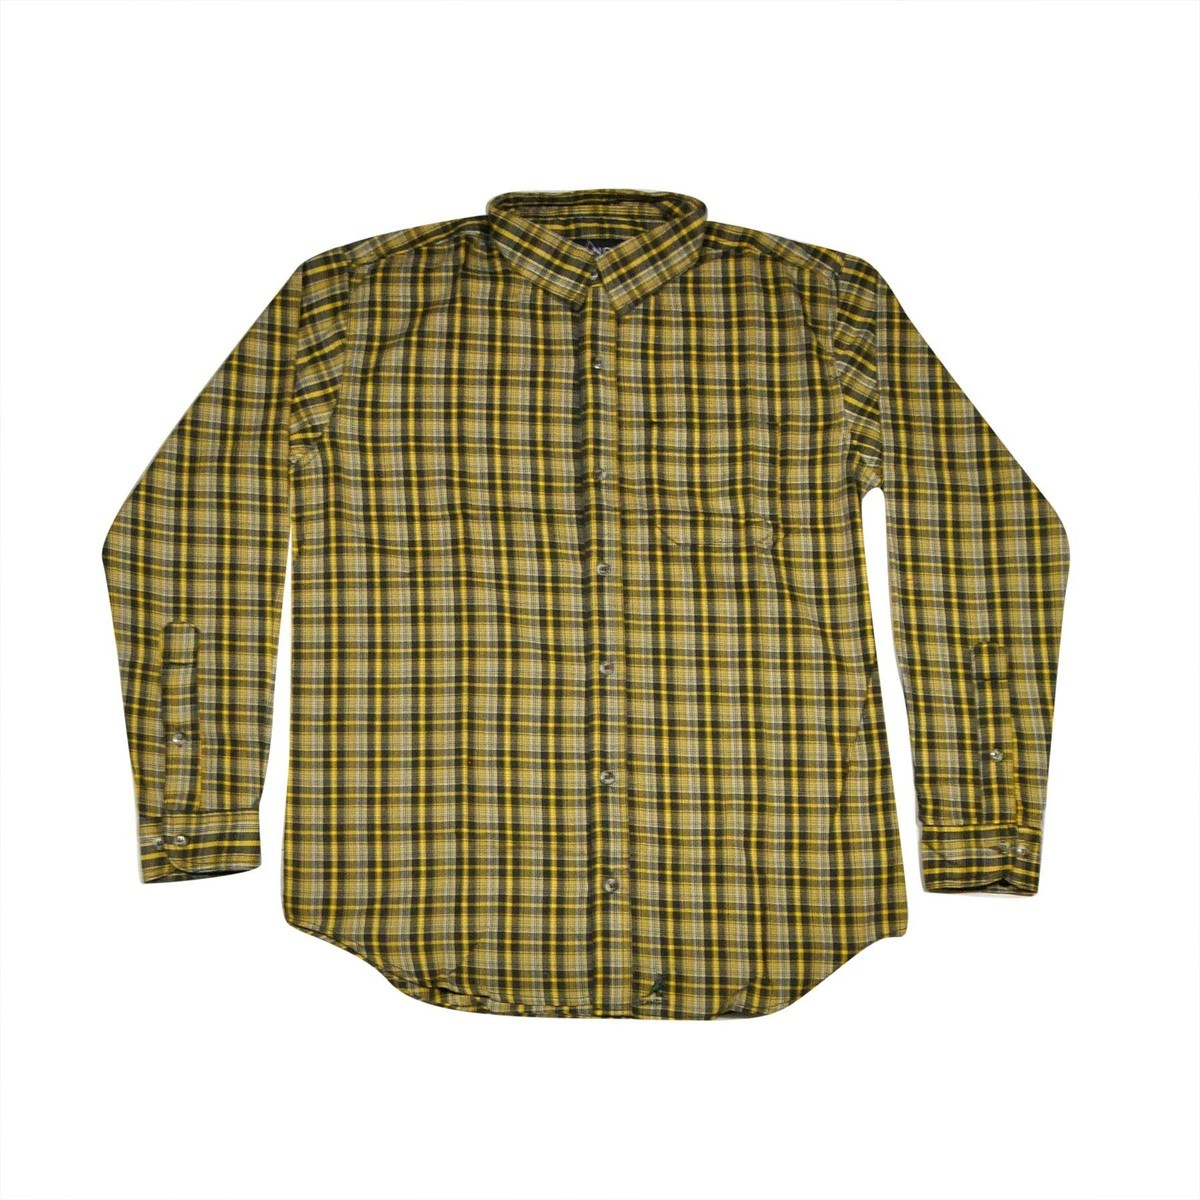 Kangol カンゴール Plaid Single Pocket Button-Up Shirt Deep Green Combo Shirt 帽子 Deep Green Combo